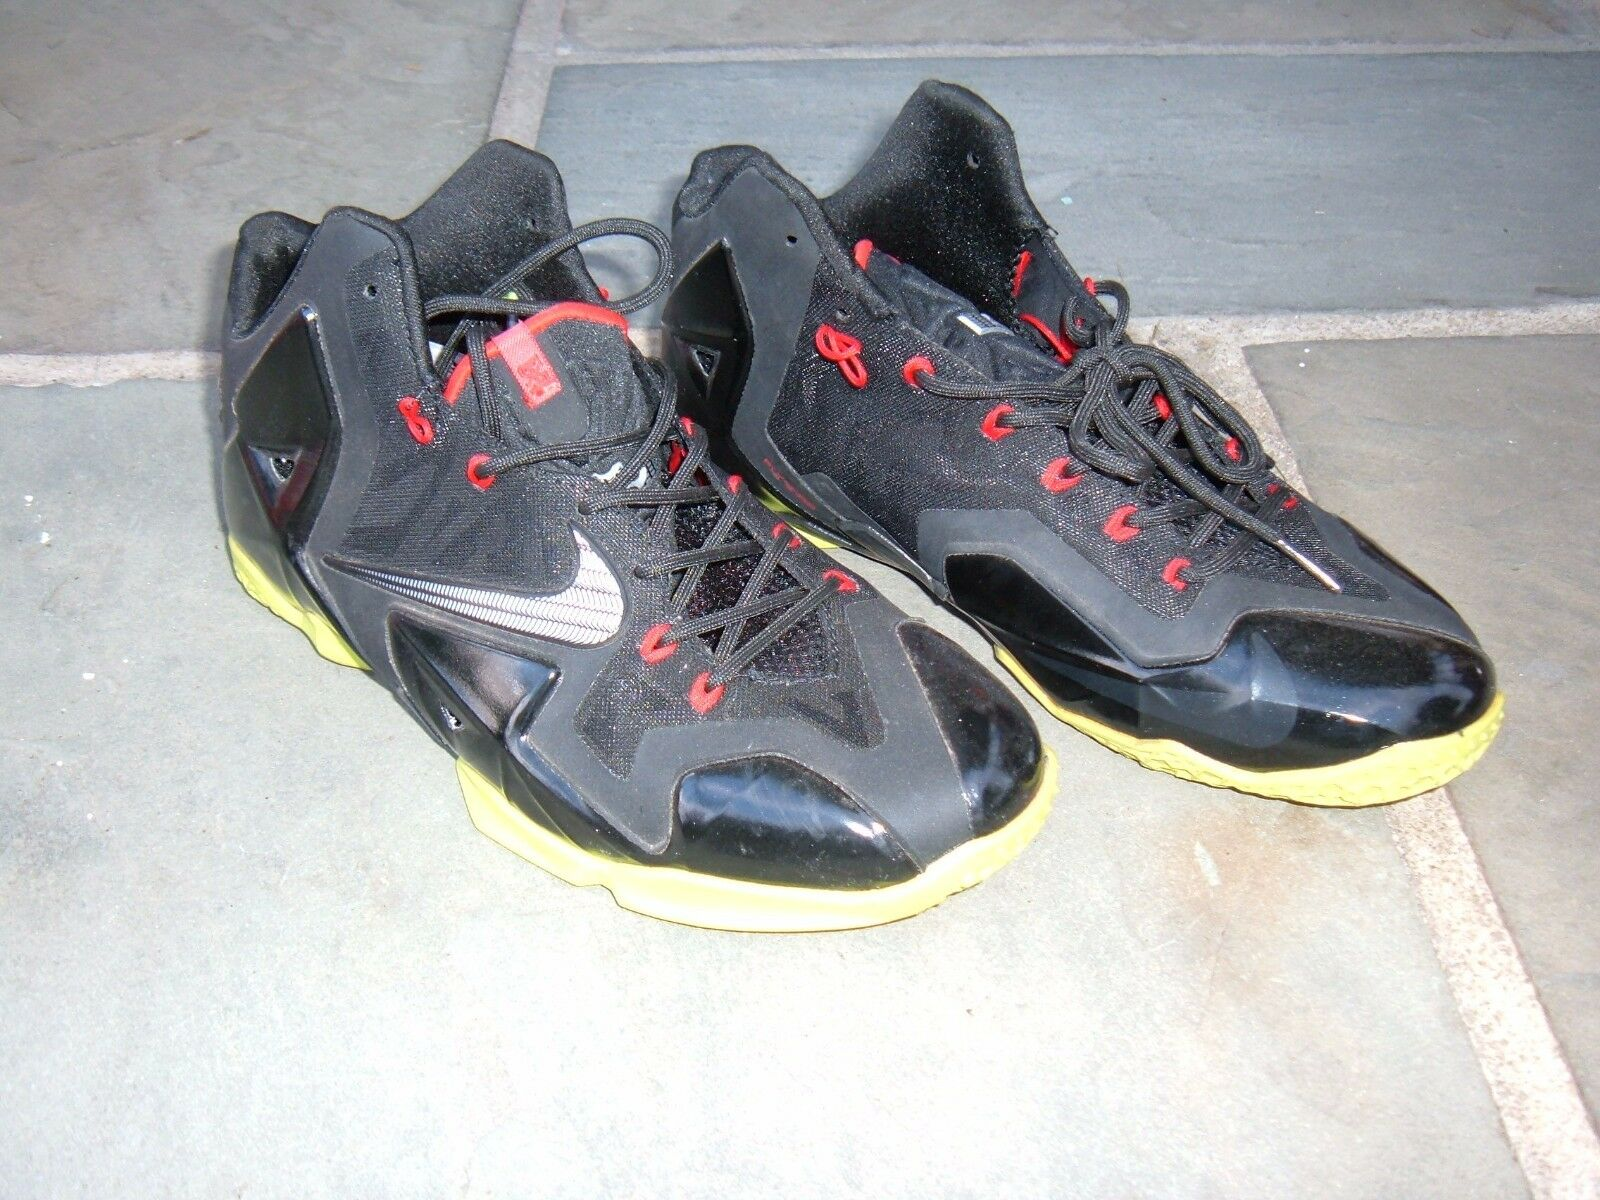 Nike LeBron James / 616175 063 Flywire hombres negro 4 / 24 / James 12 talla 10 Basketball Wild Casual Shoes 173514